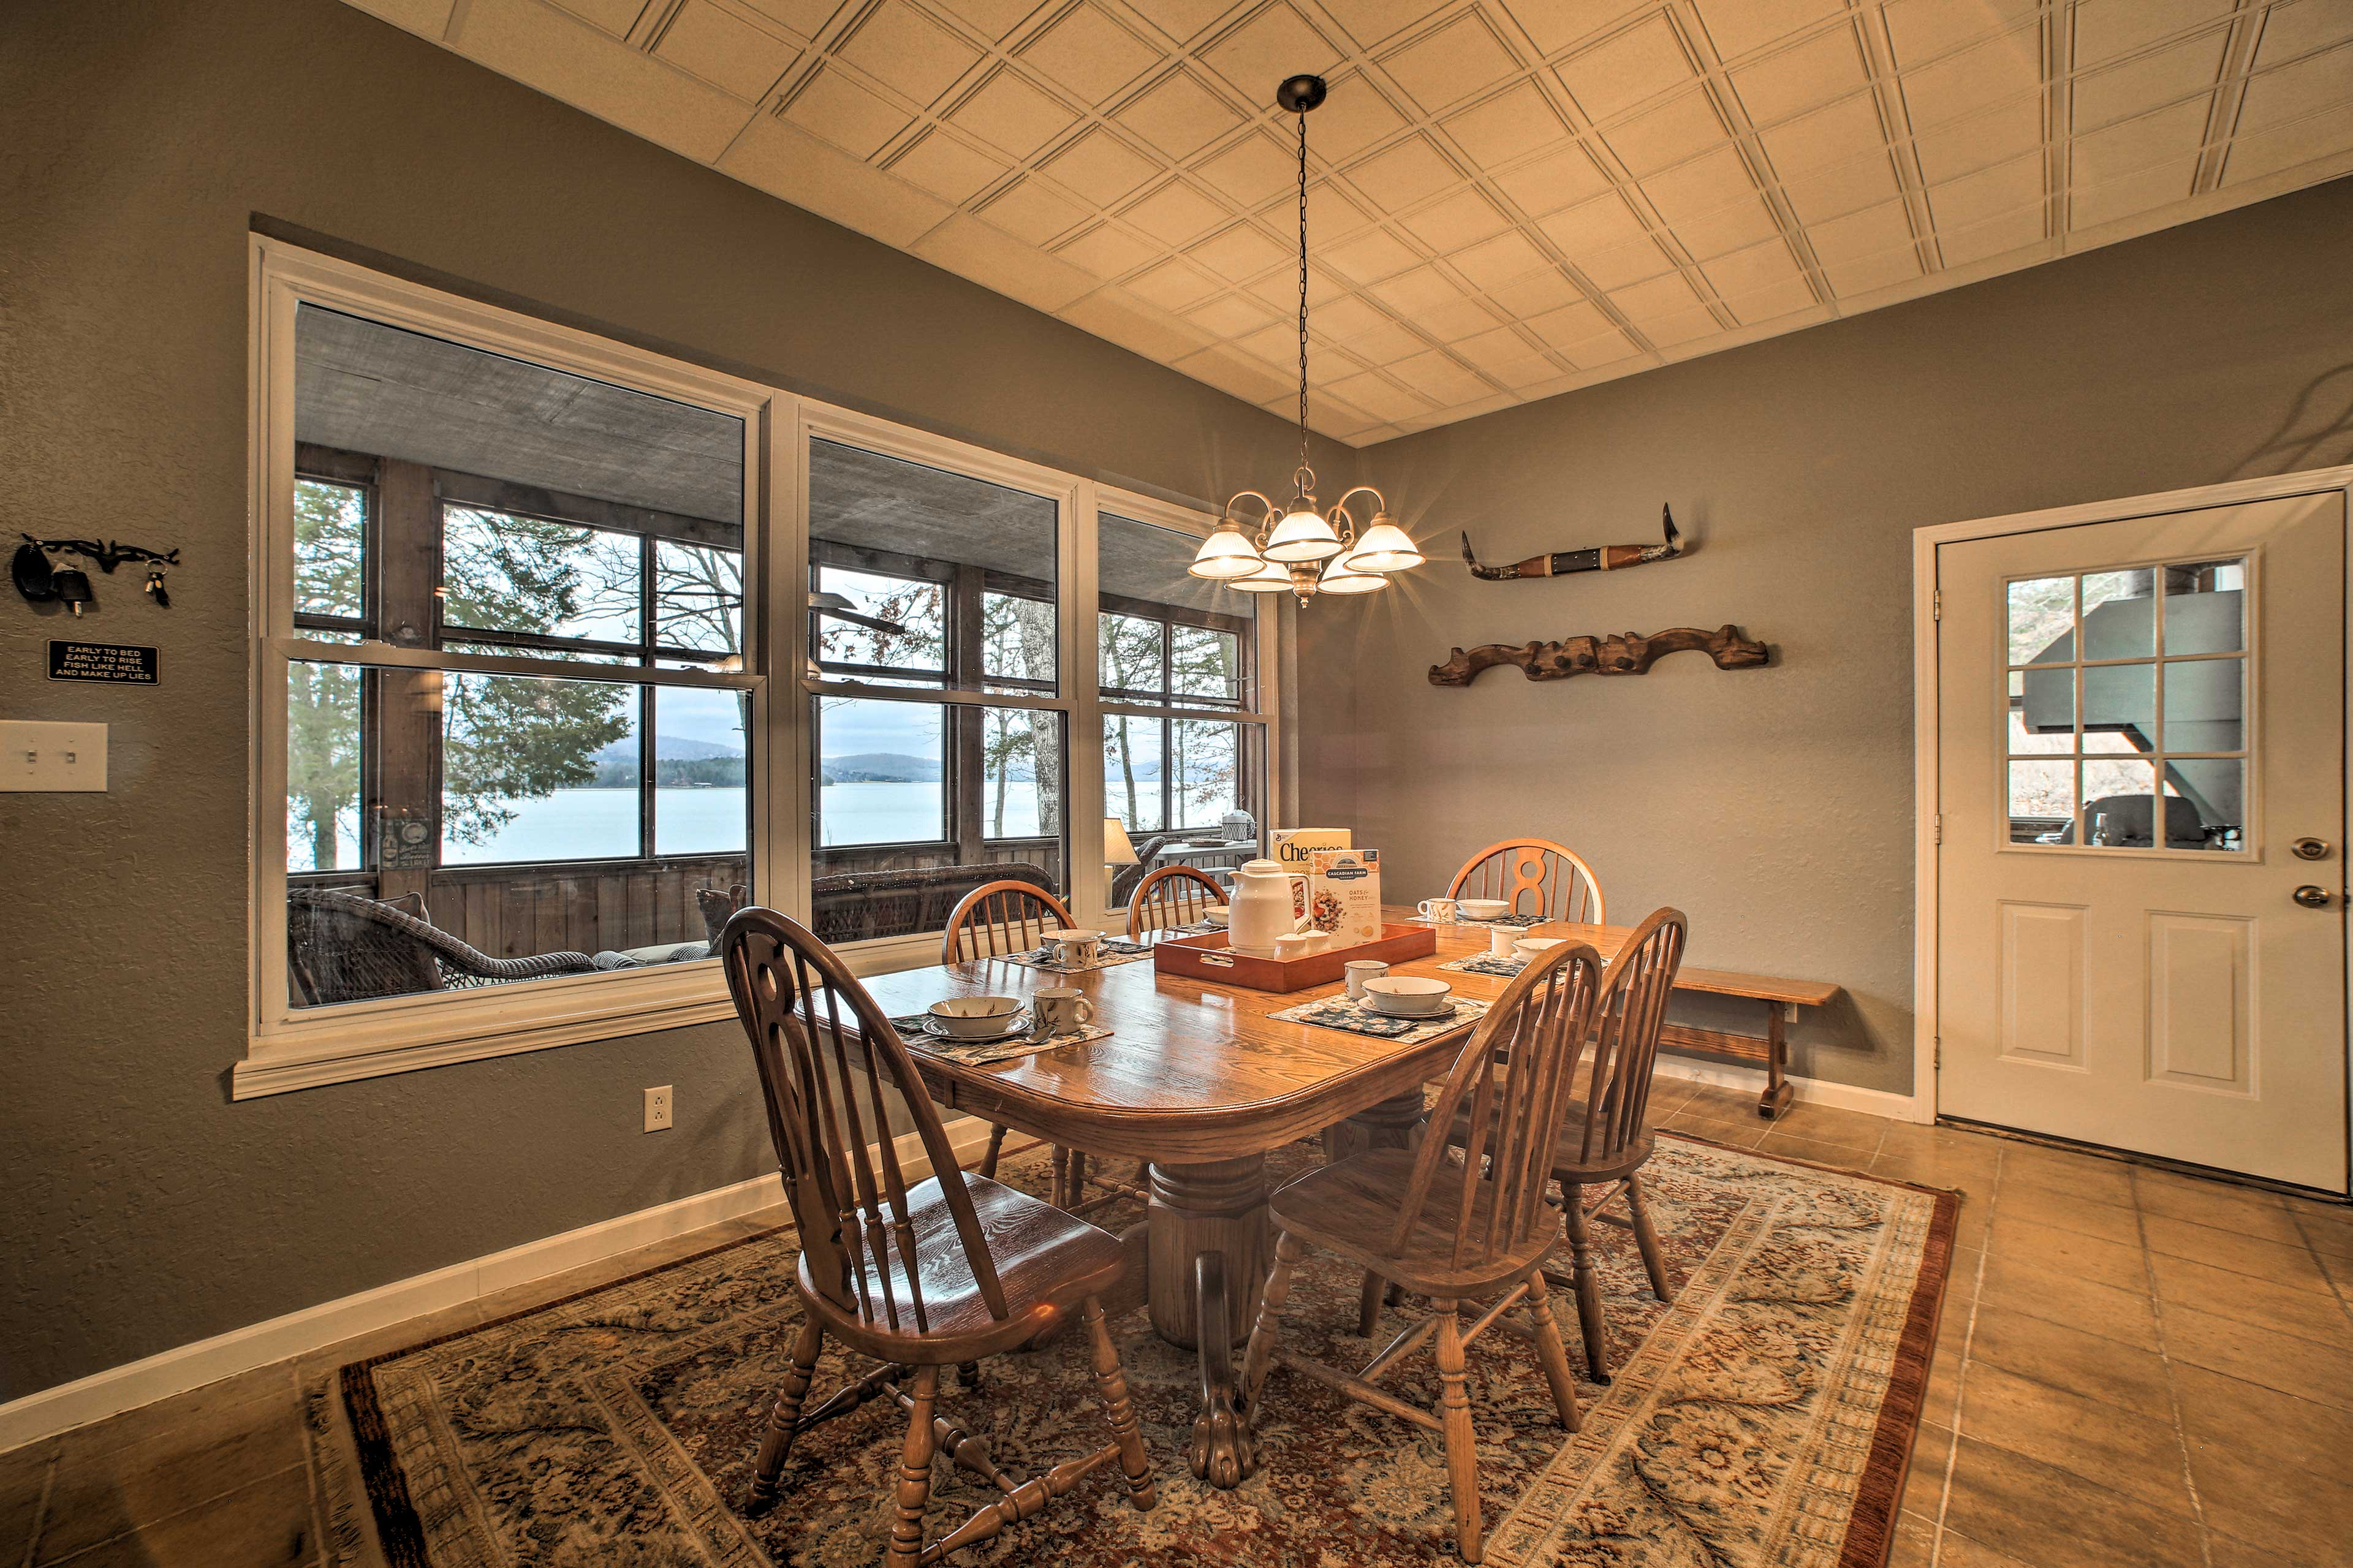 There are several dining tables to choose from at this spacious vacation home.